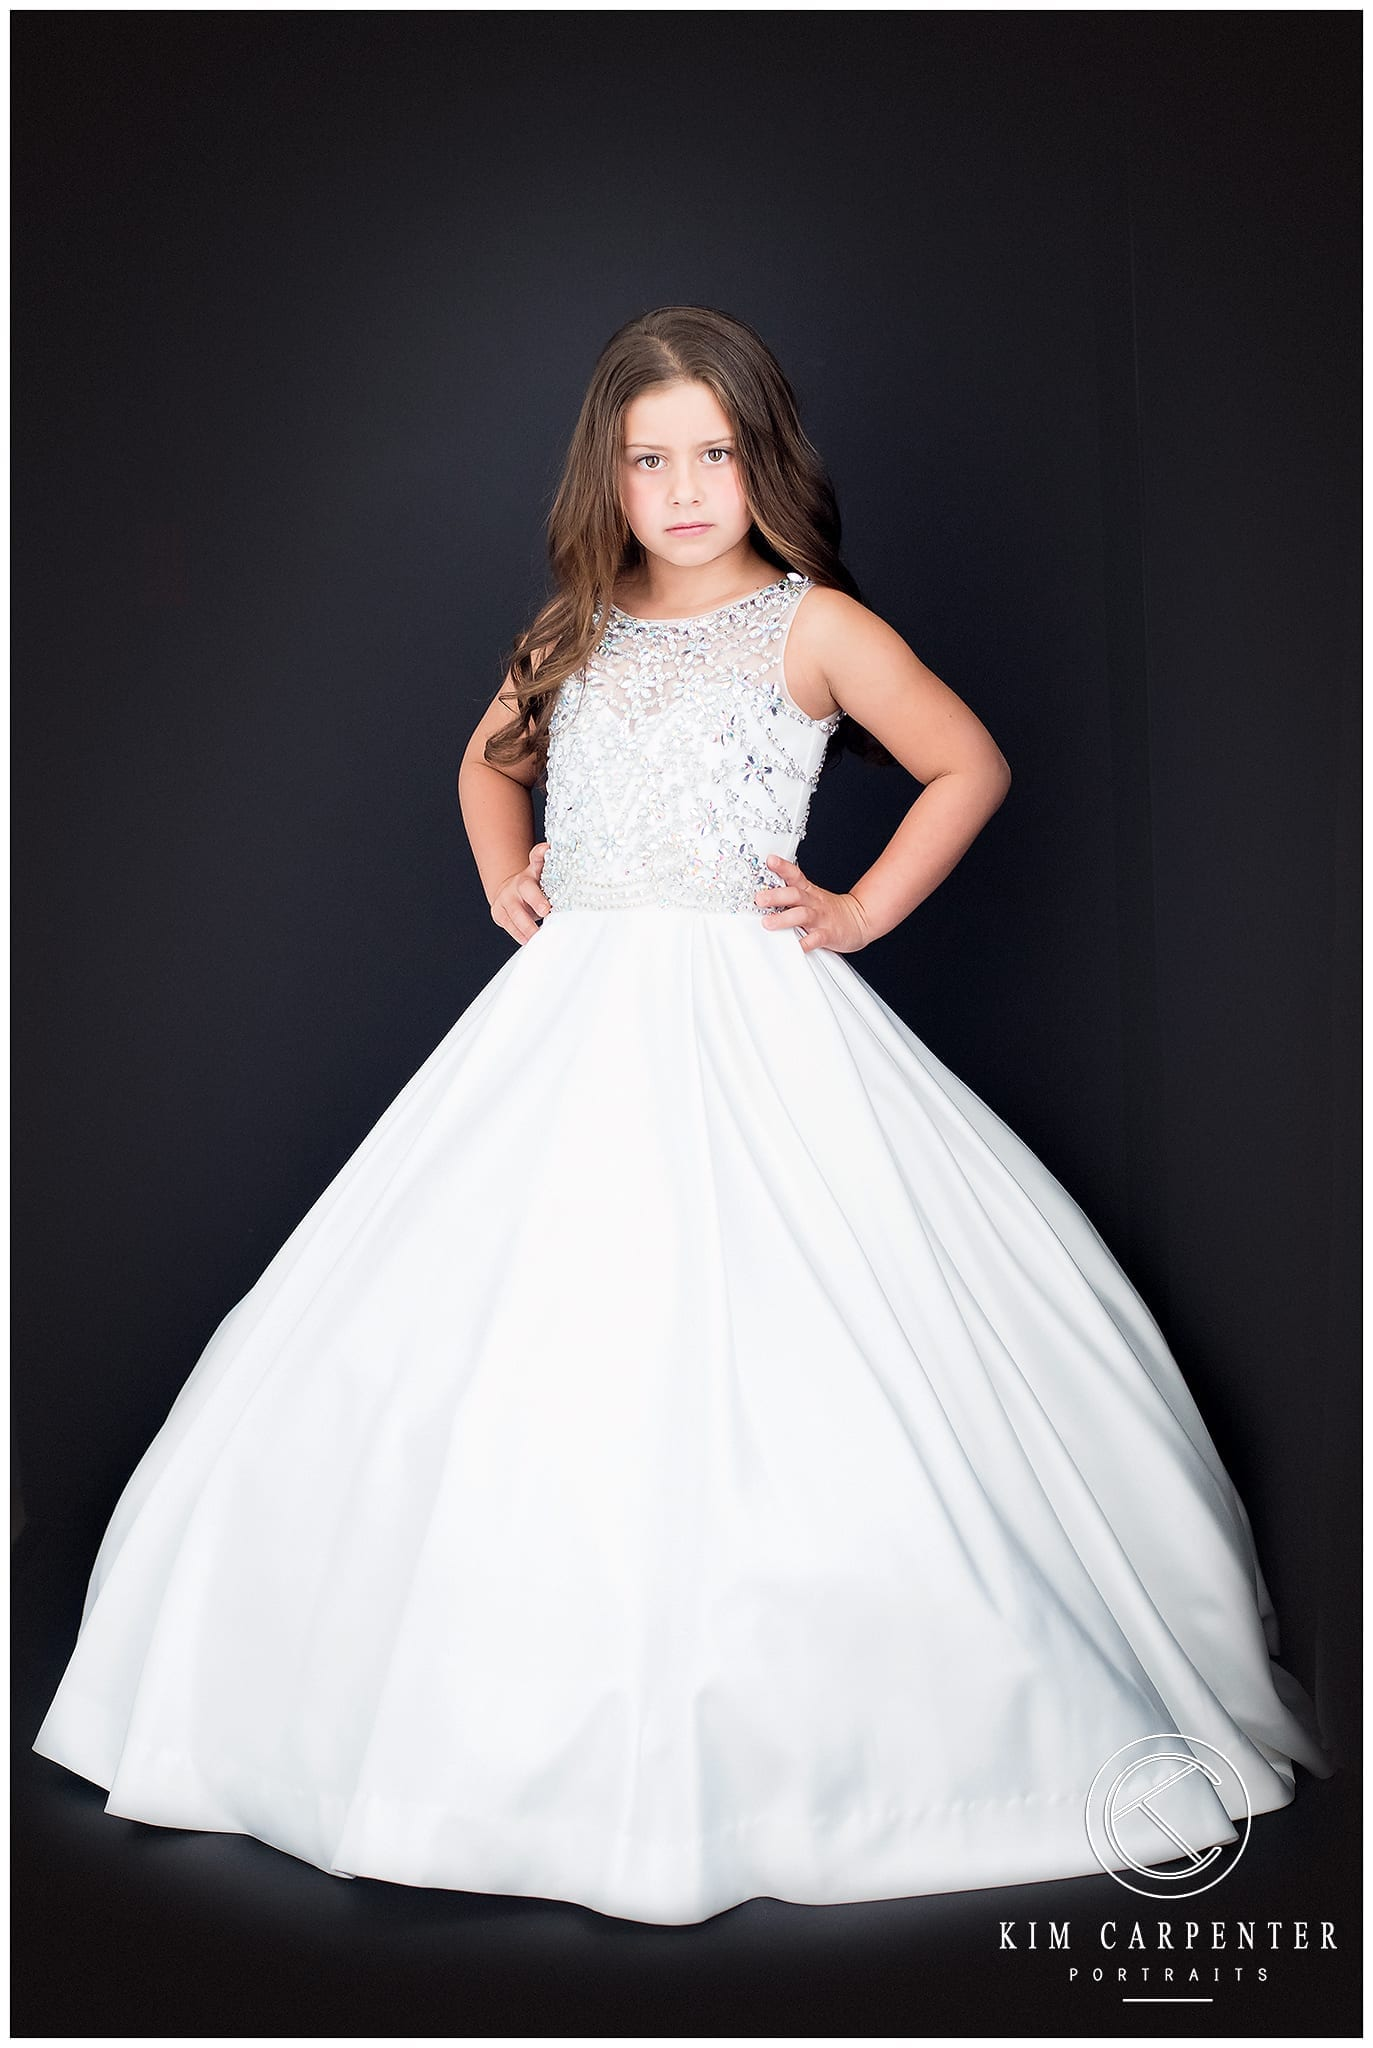 beautiful little girl in a long white gown with a black background